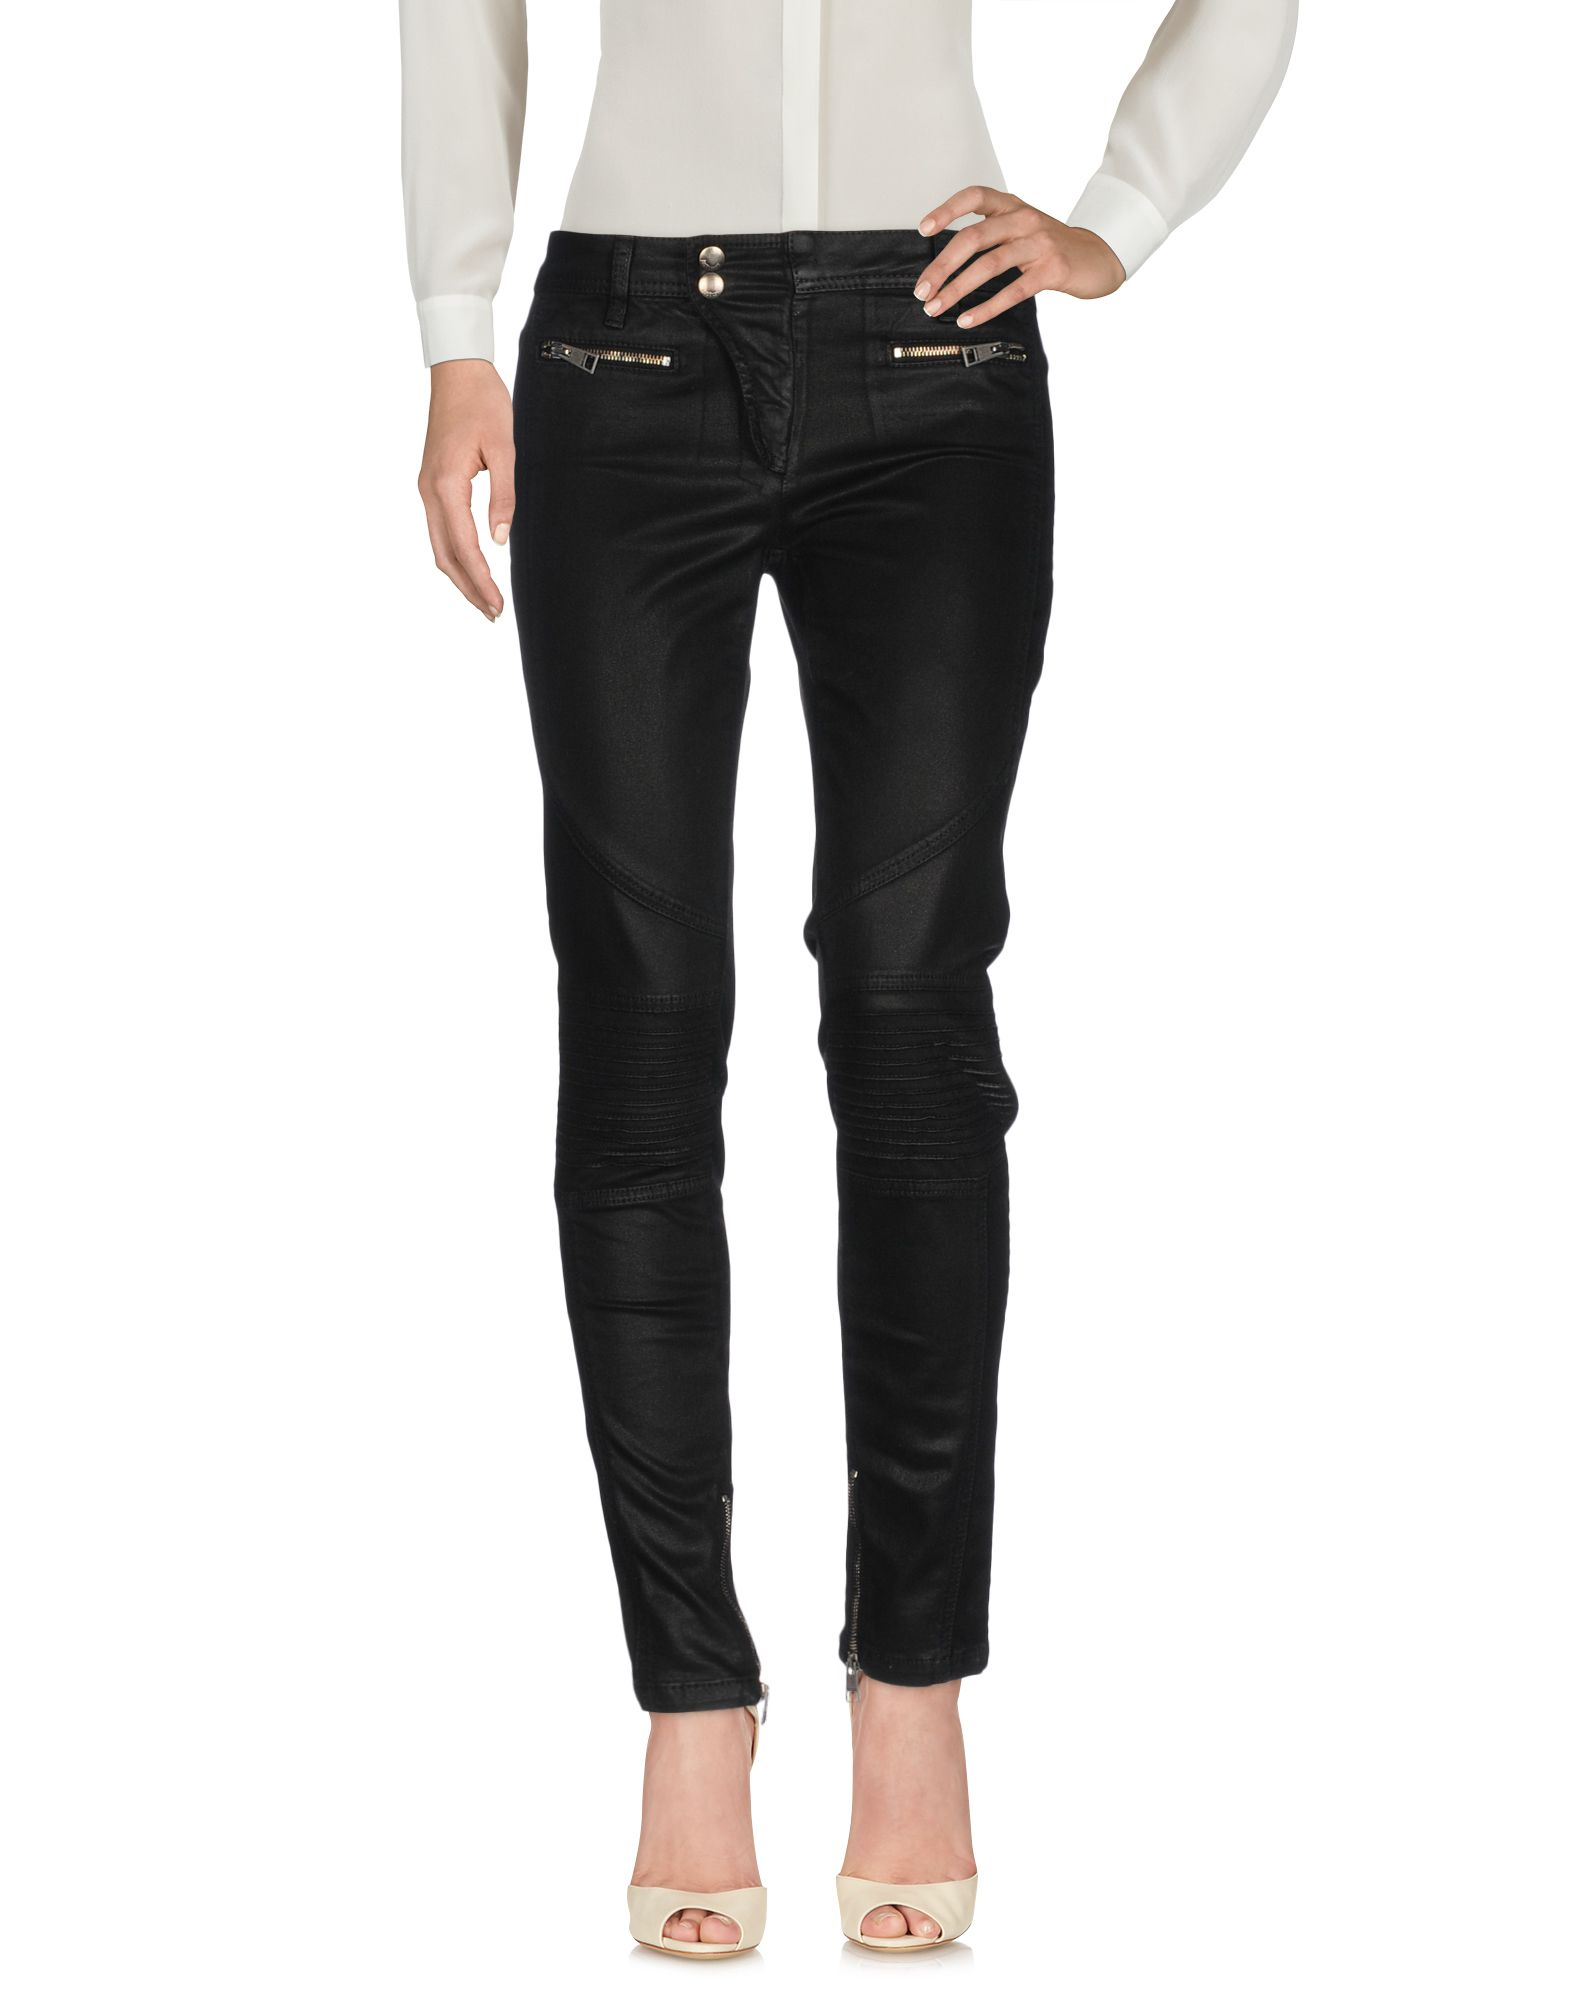 Pantalone Just Cavalli Donna - Acquista online su c4hR7BFJ3h